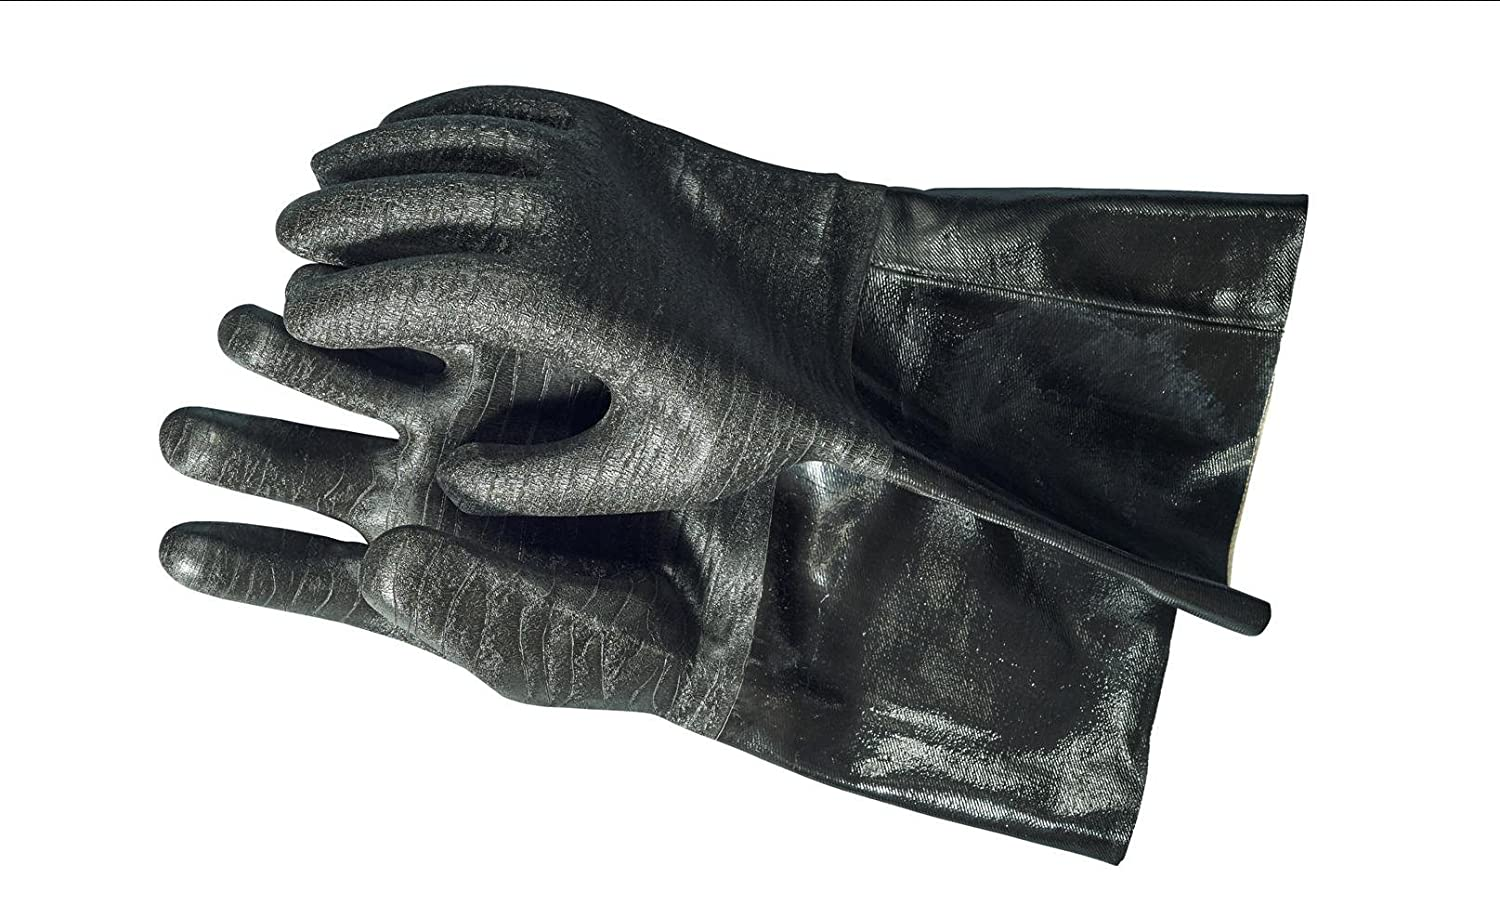 Artisan Griller BBQ Glove - Insulated Heat Resistant Barbecue, Smoker, Grill, Oven and Cooking Gloves. Great in The Kitchen or at The Barbeque Grilling -1 Pair Size 10/XL